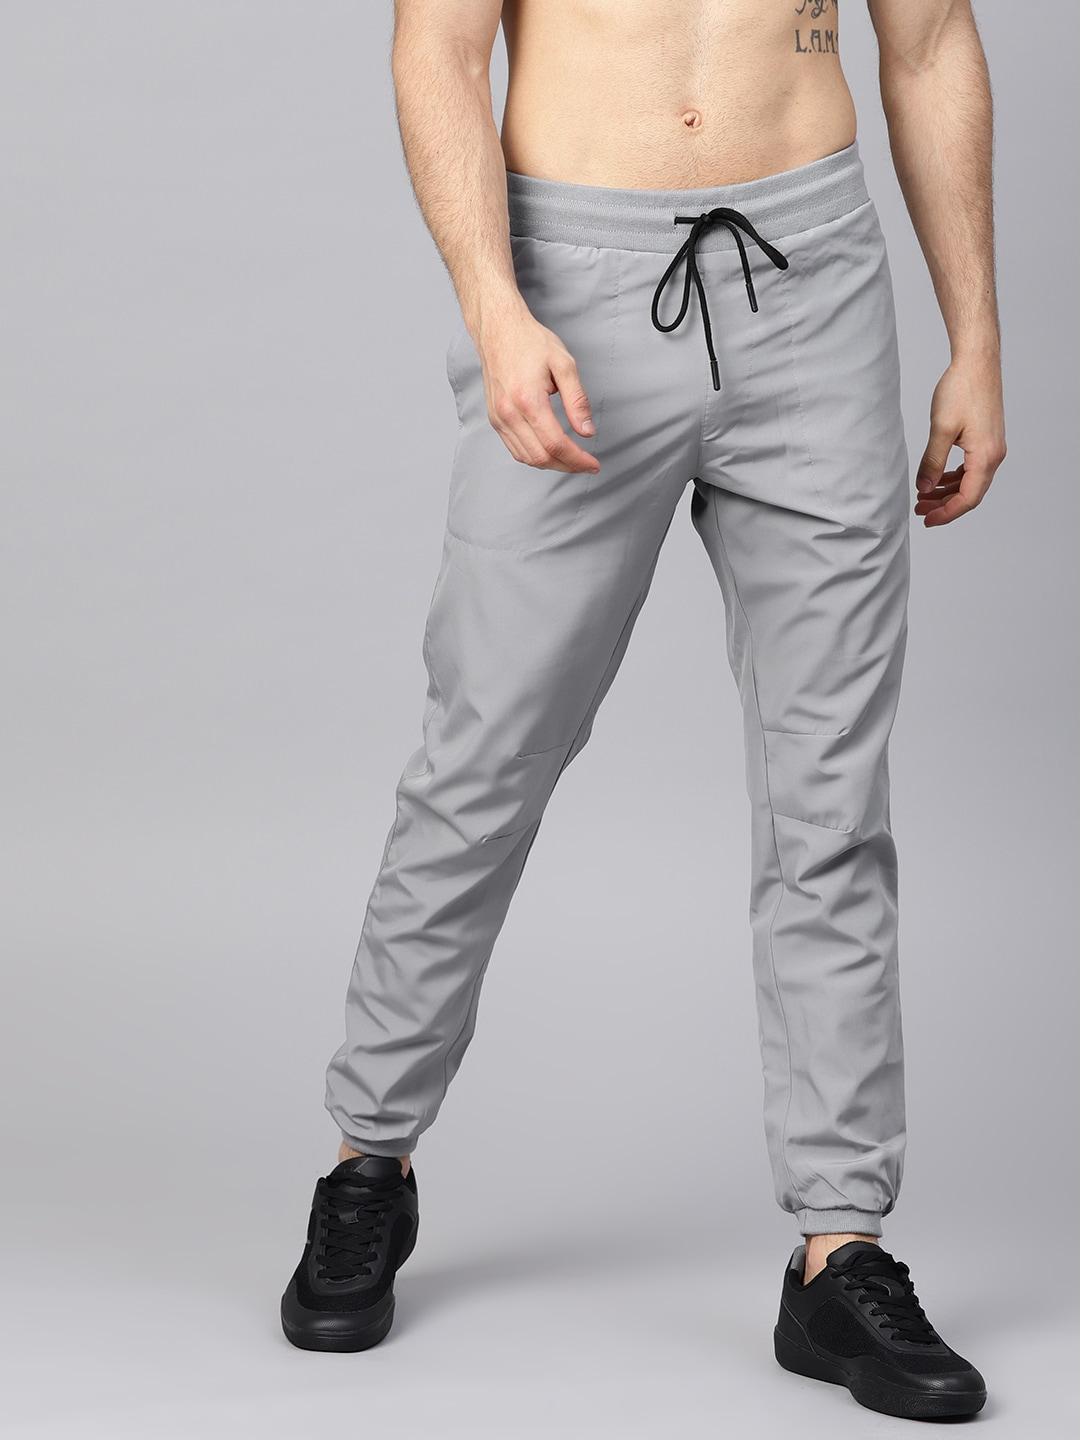 1c2d83e69dba2 Men Track Pants-Buy Track Pant for Men Online in India